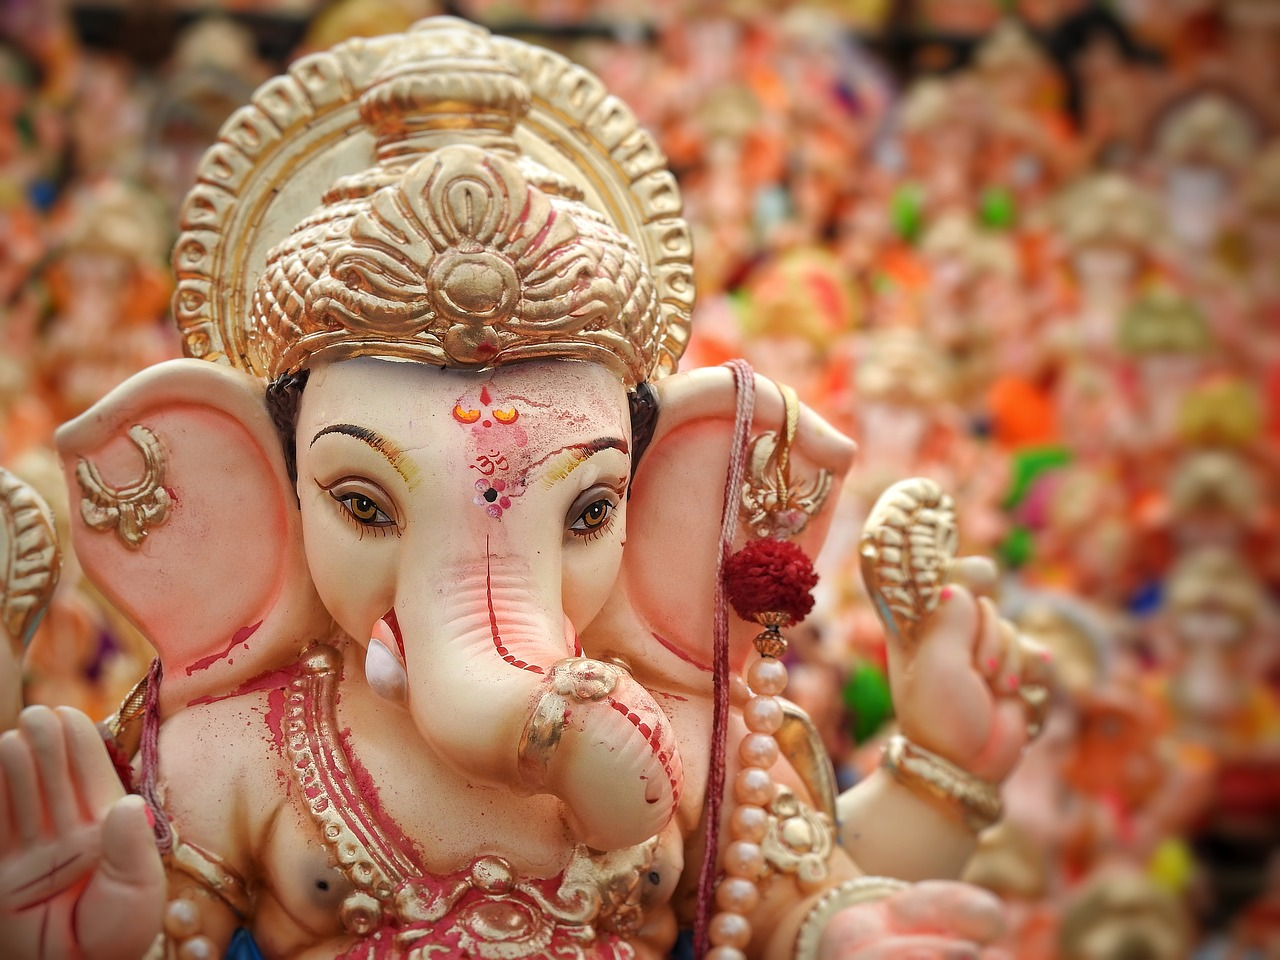 100 Names Of Hindu Lord Ganesha For Baby Boy With Meaning